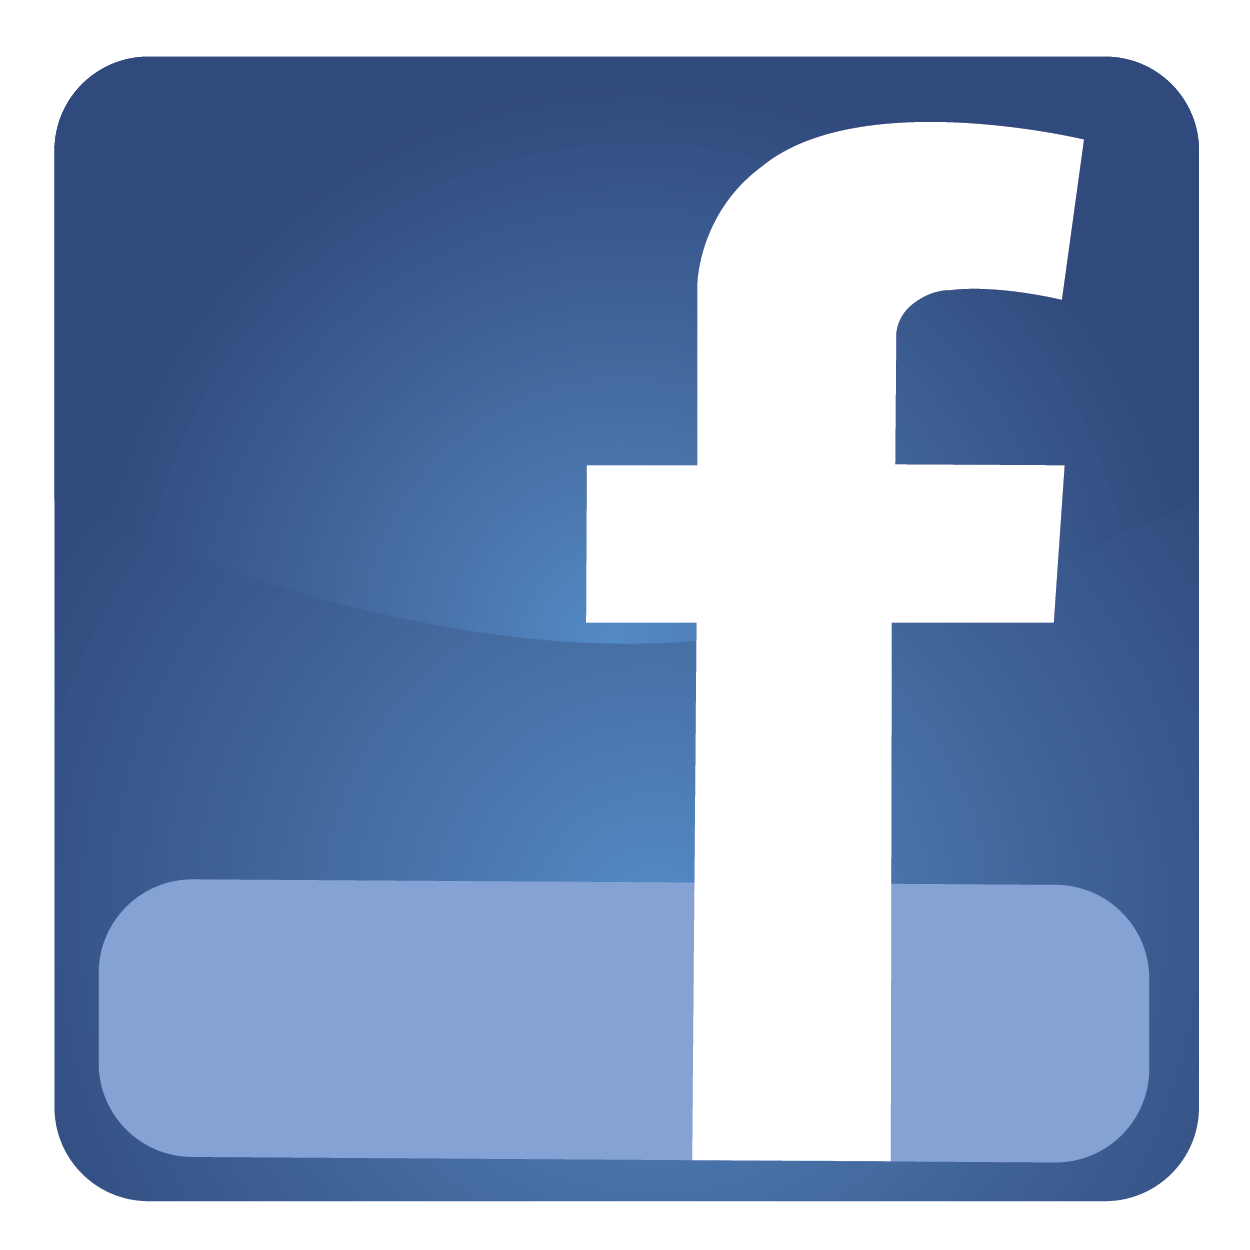 High Resolution Logo Facebook Png Icon #46258.